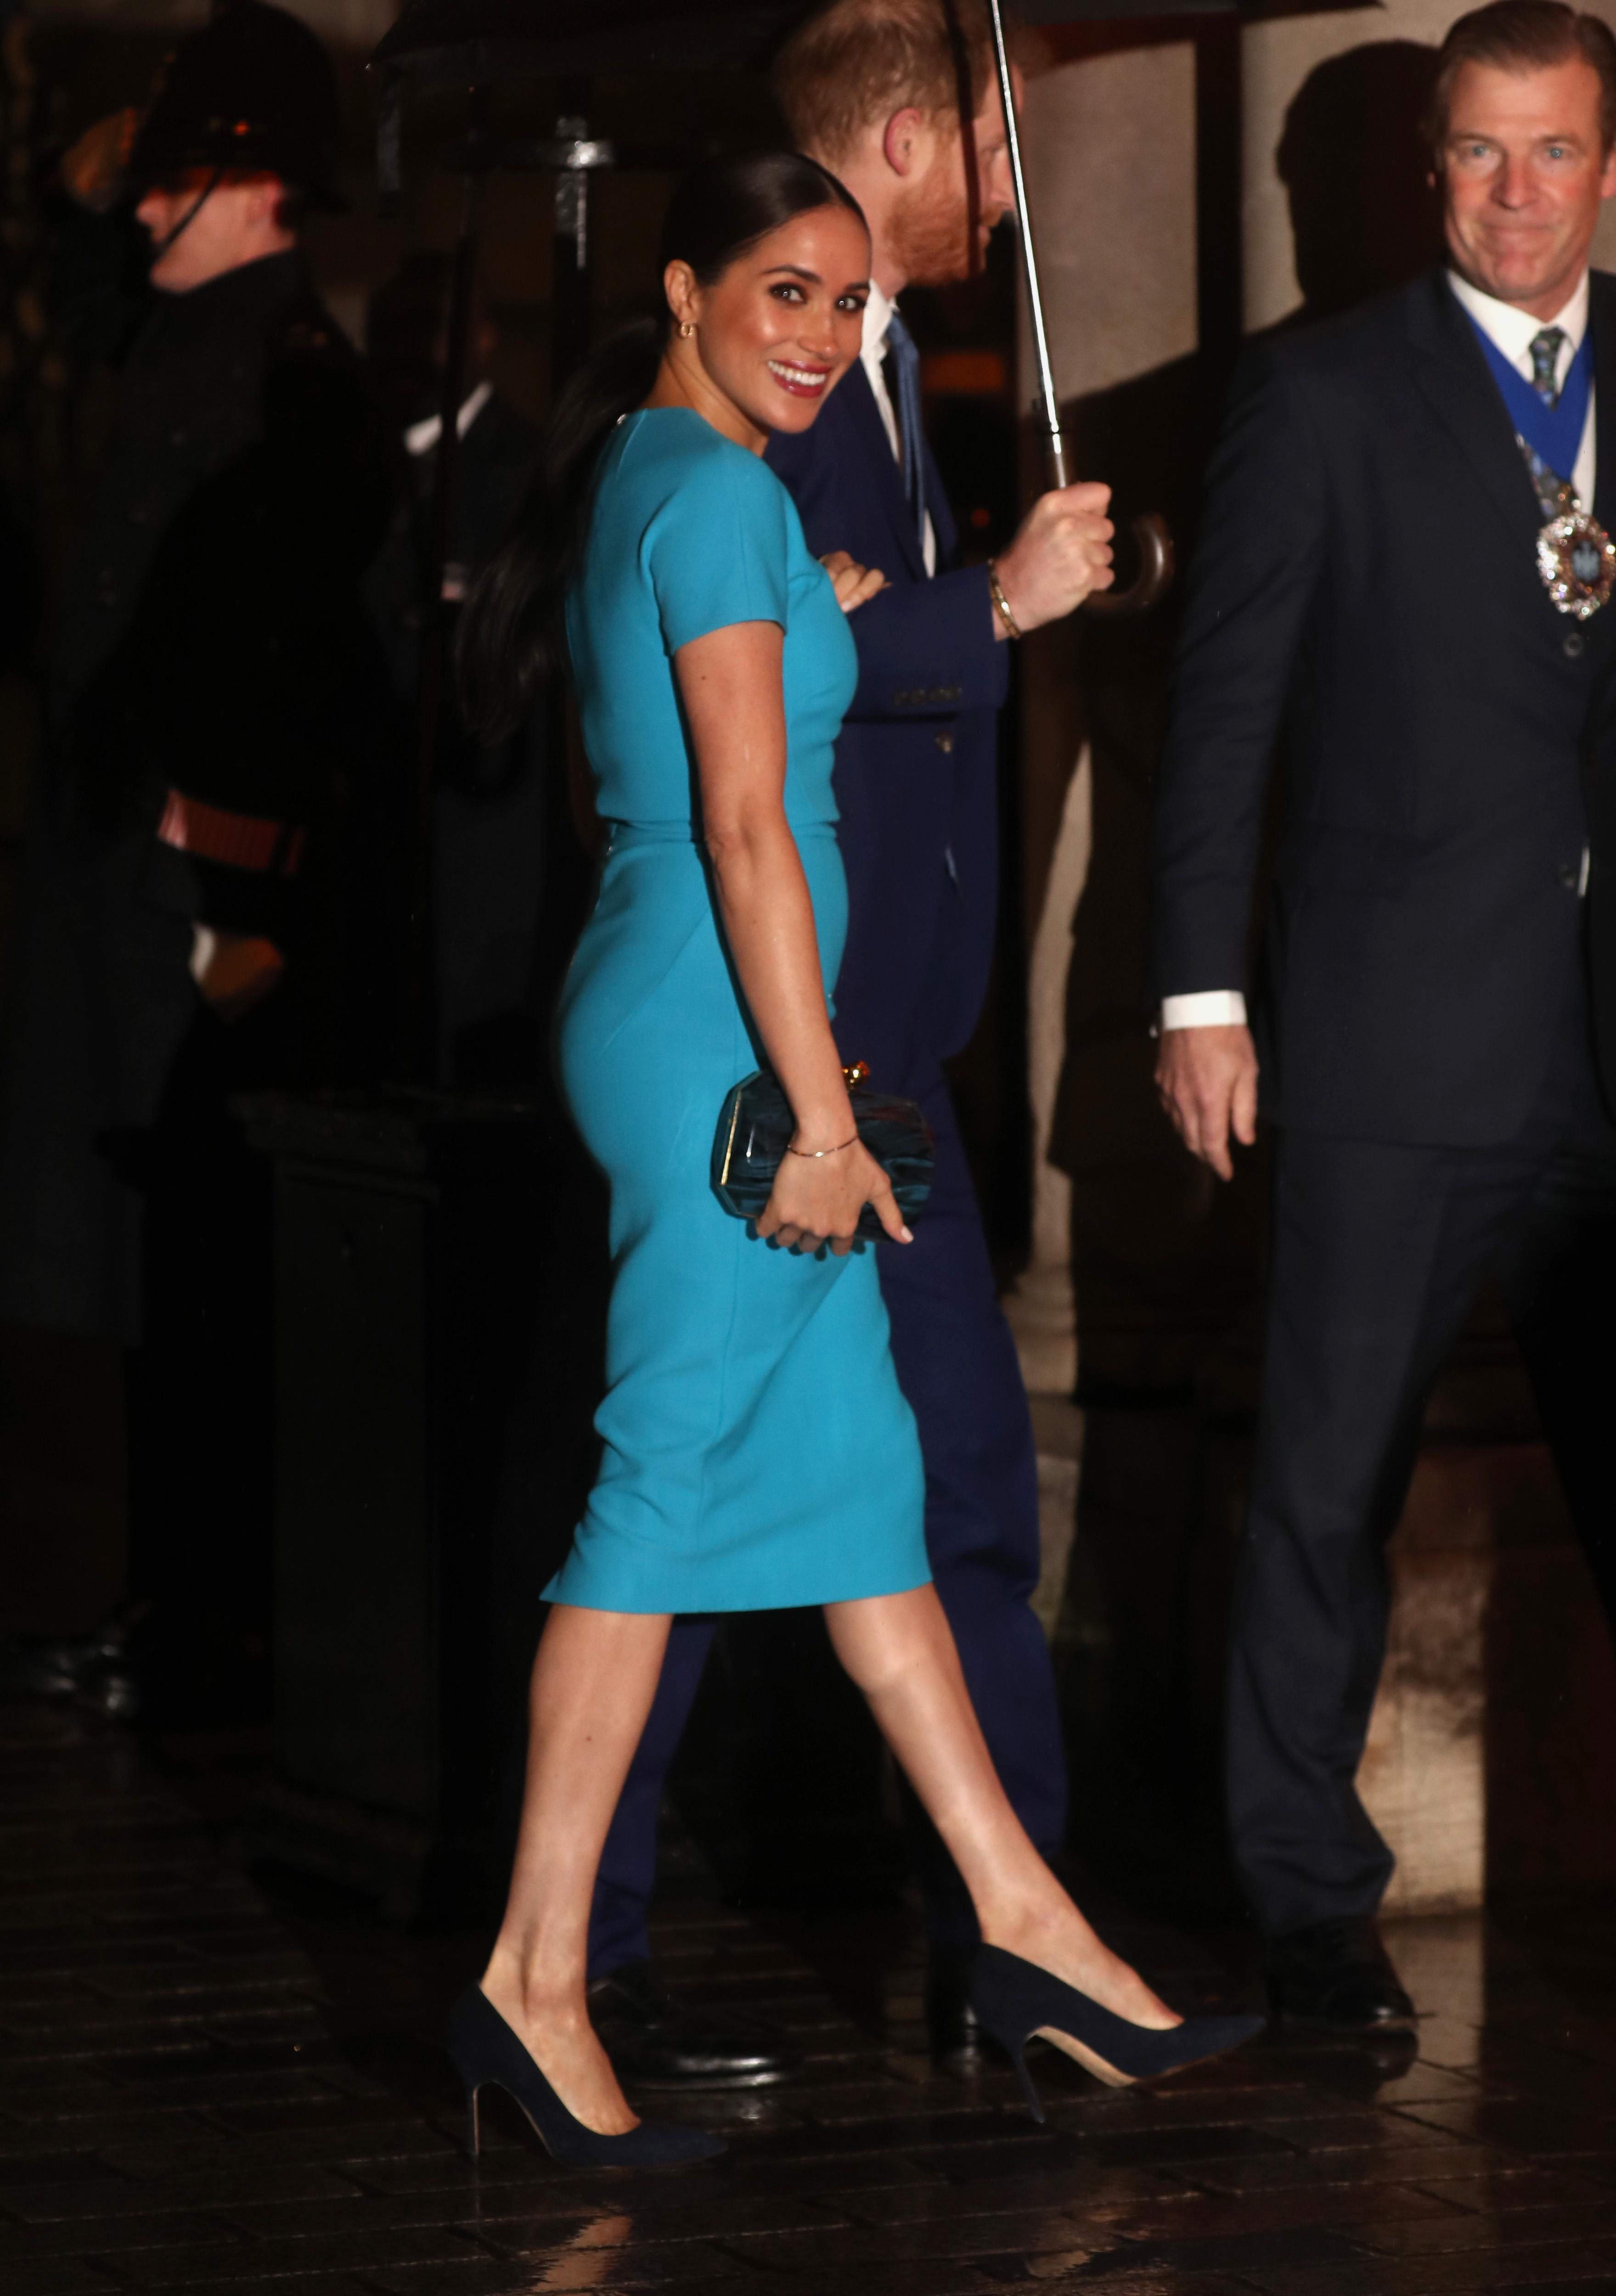 LONDON, ENGLAND - MARCH 05: Meghan, Duchess of Sussex attends The Endeavour Fund Awards at Mansion House on March 05, 2020 in London, England. (Photo by Chris Jackson/Getty Images)